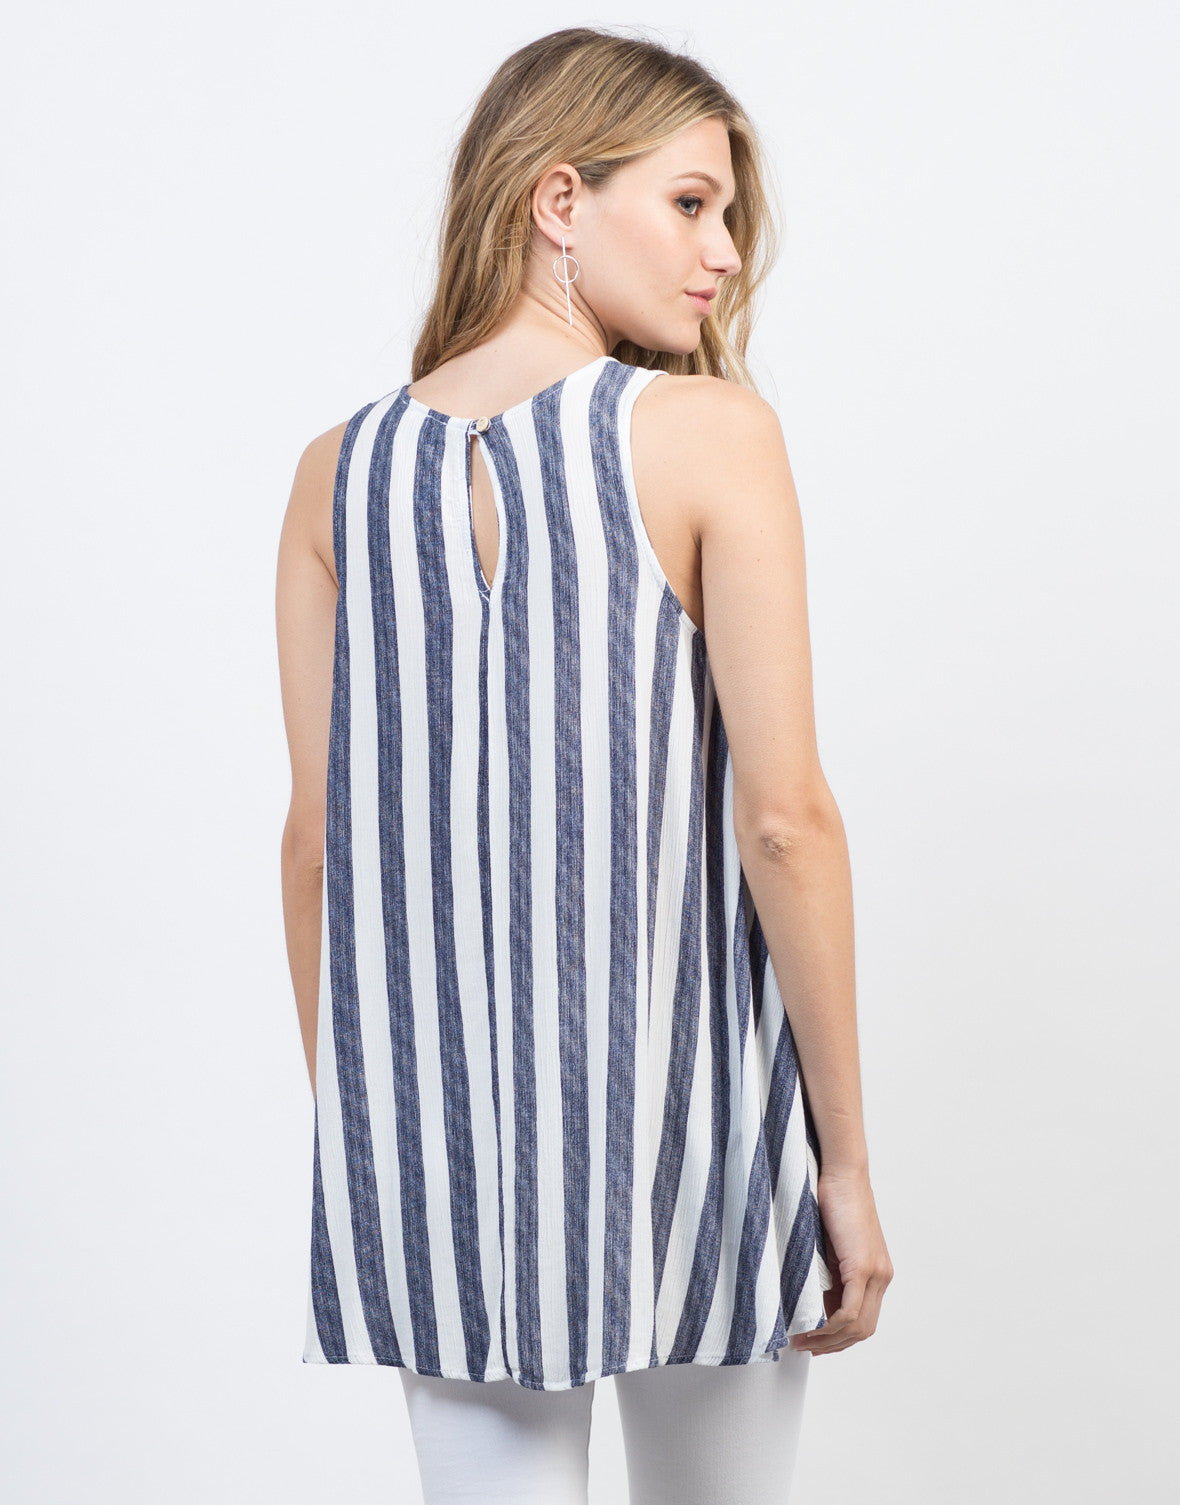 Back View of Flowy Striped Tunic Top